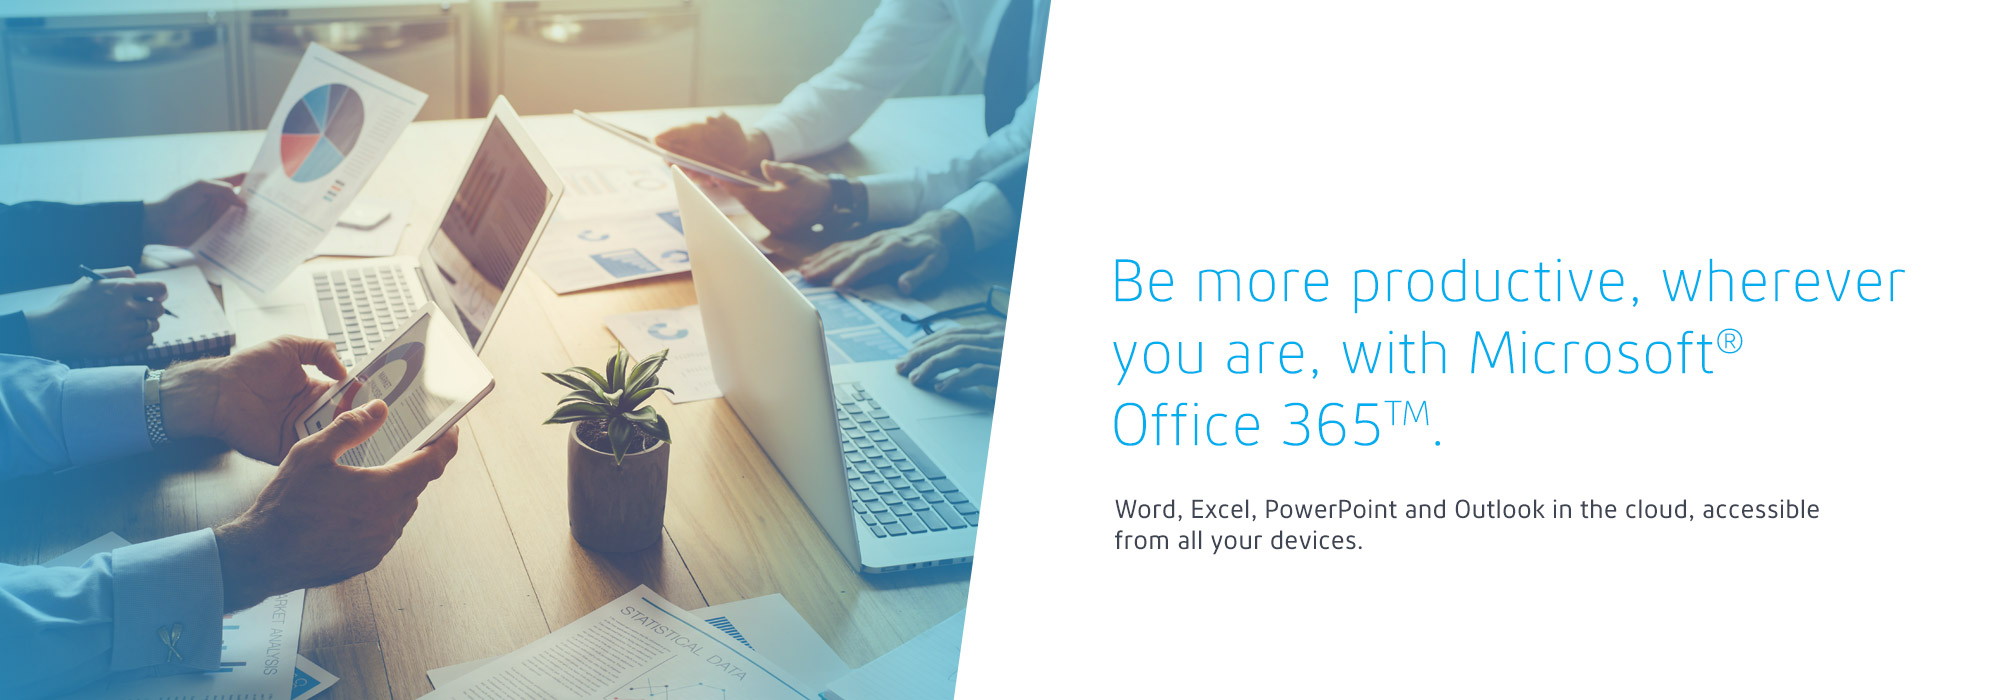 Be more productive, wherever you are, with Microsoft Office 365